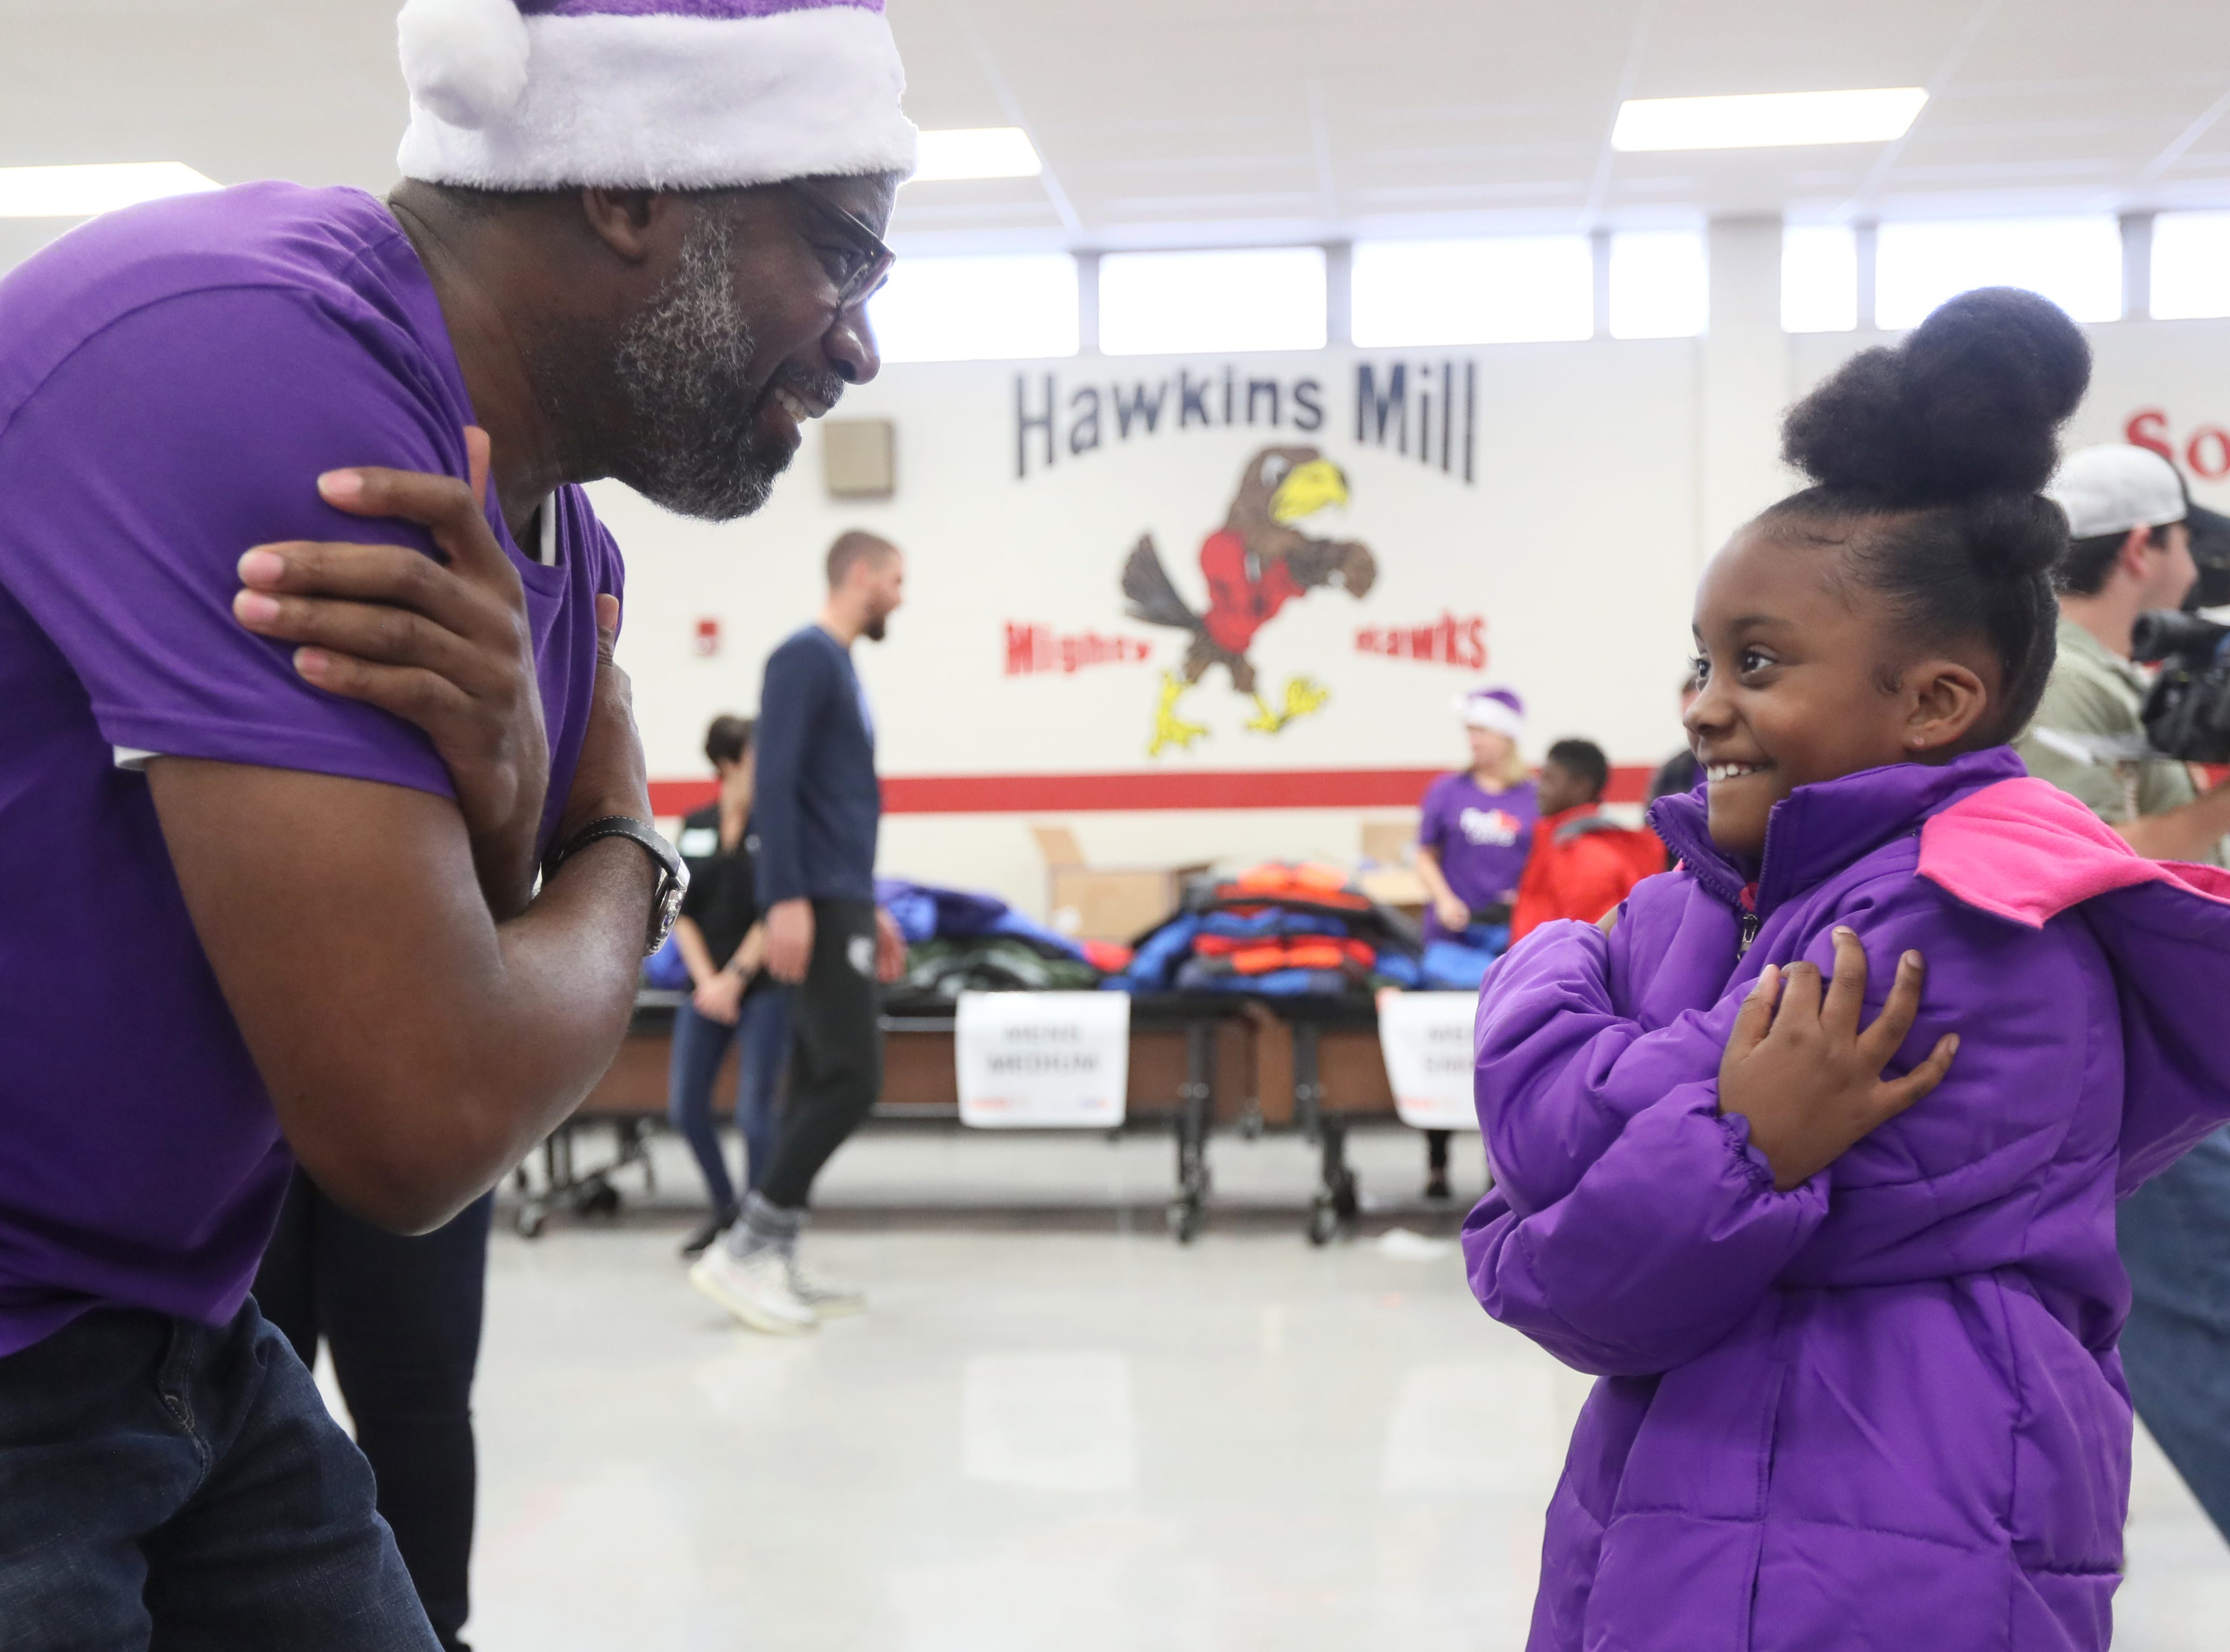 Brian Tabor helps Ambriella Watson, 9, try on a new coat as FedEx, the Memphis Grizzlies and Operation Warm surprise children with new winter wear at Hawkins Mill Elementary School on Thursday, Nov. 8, 2018.